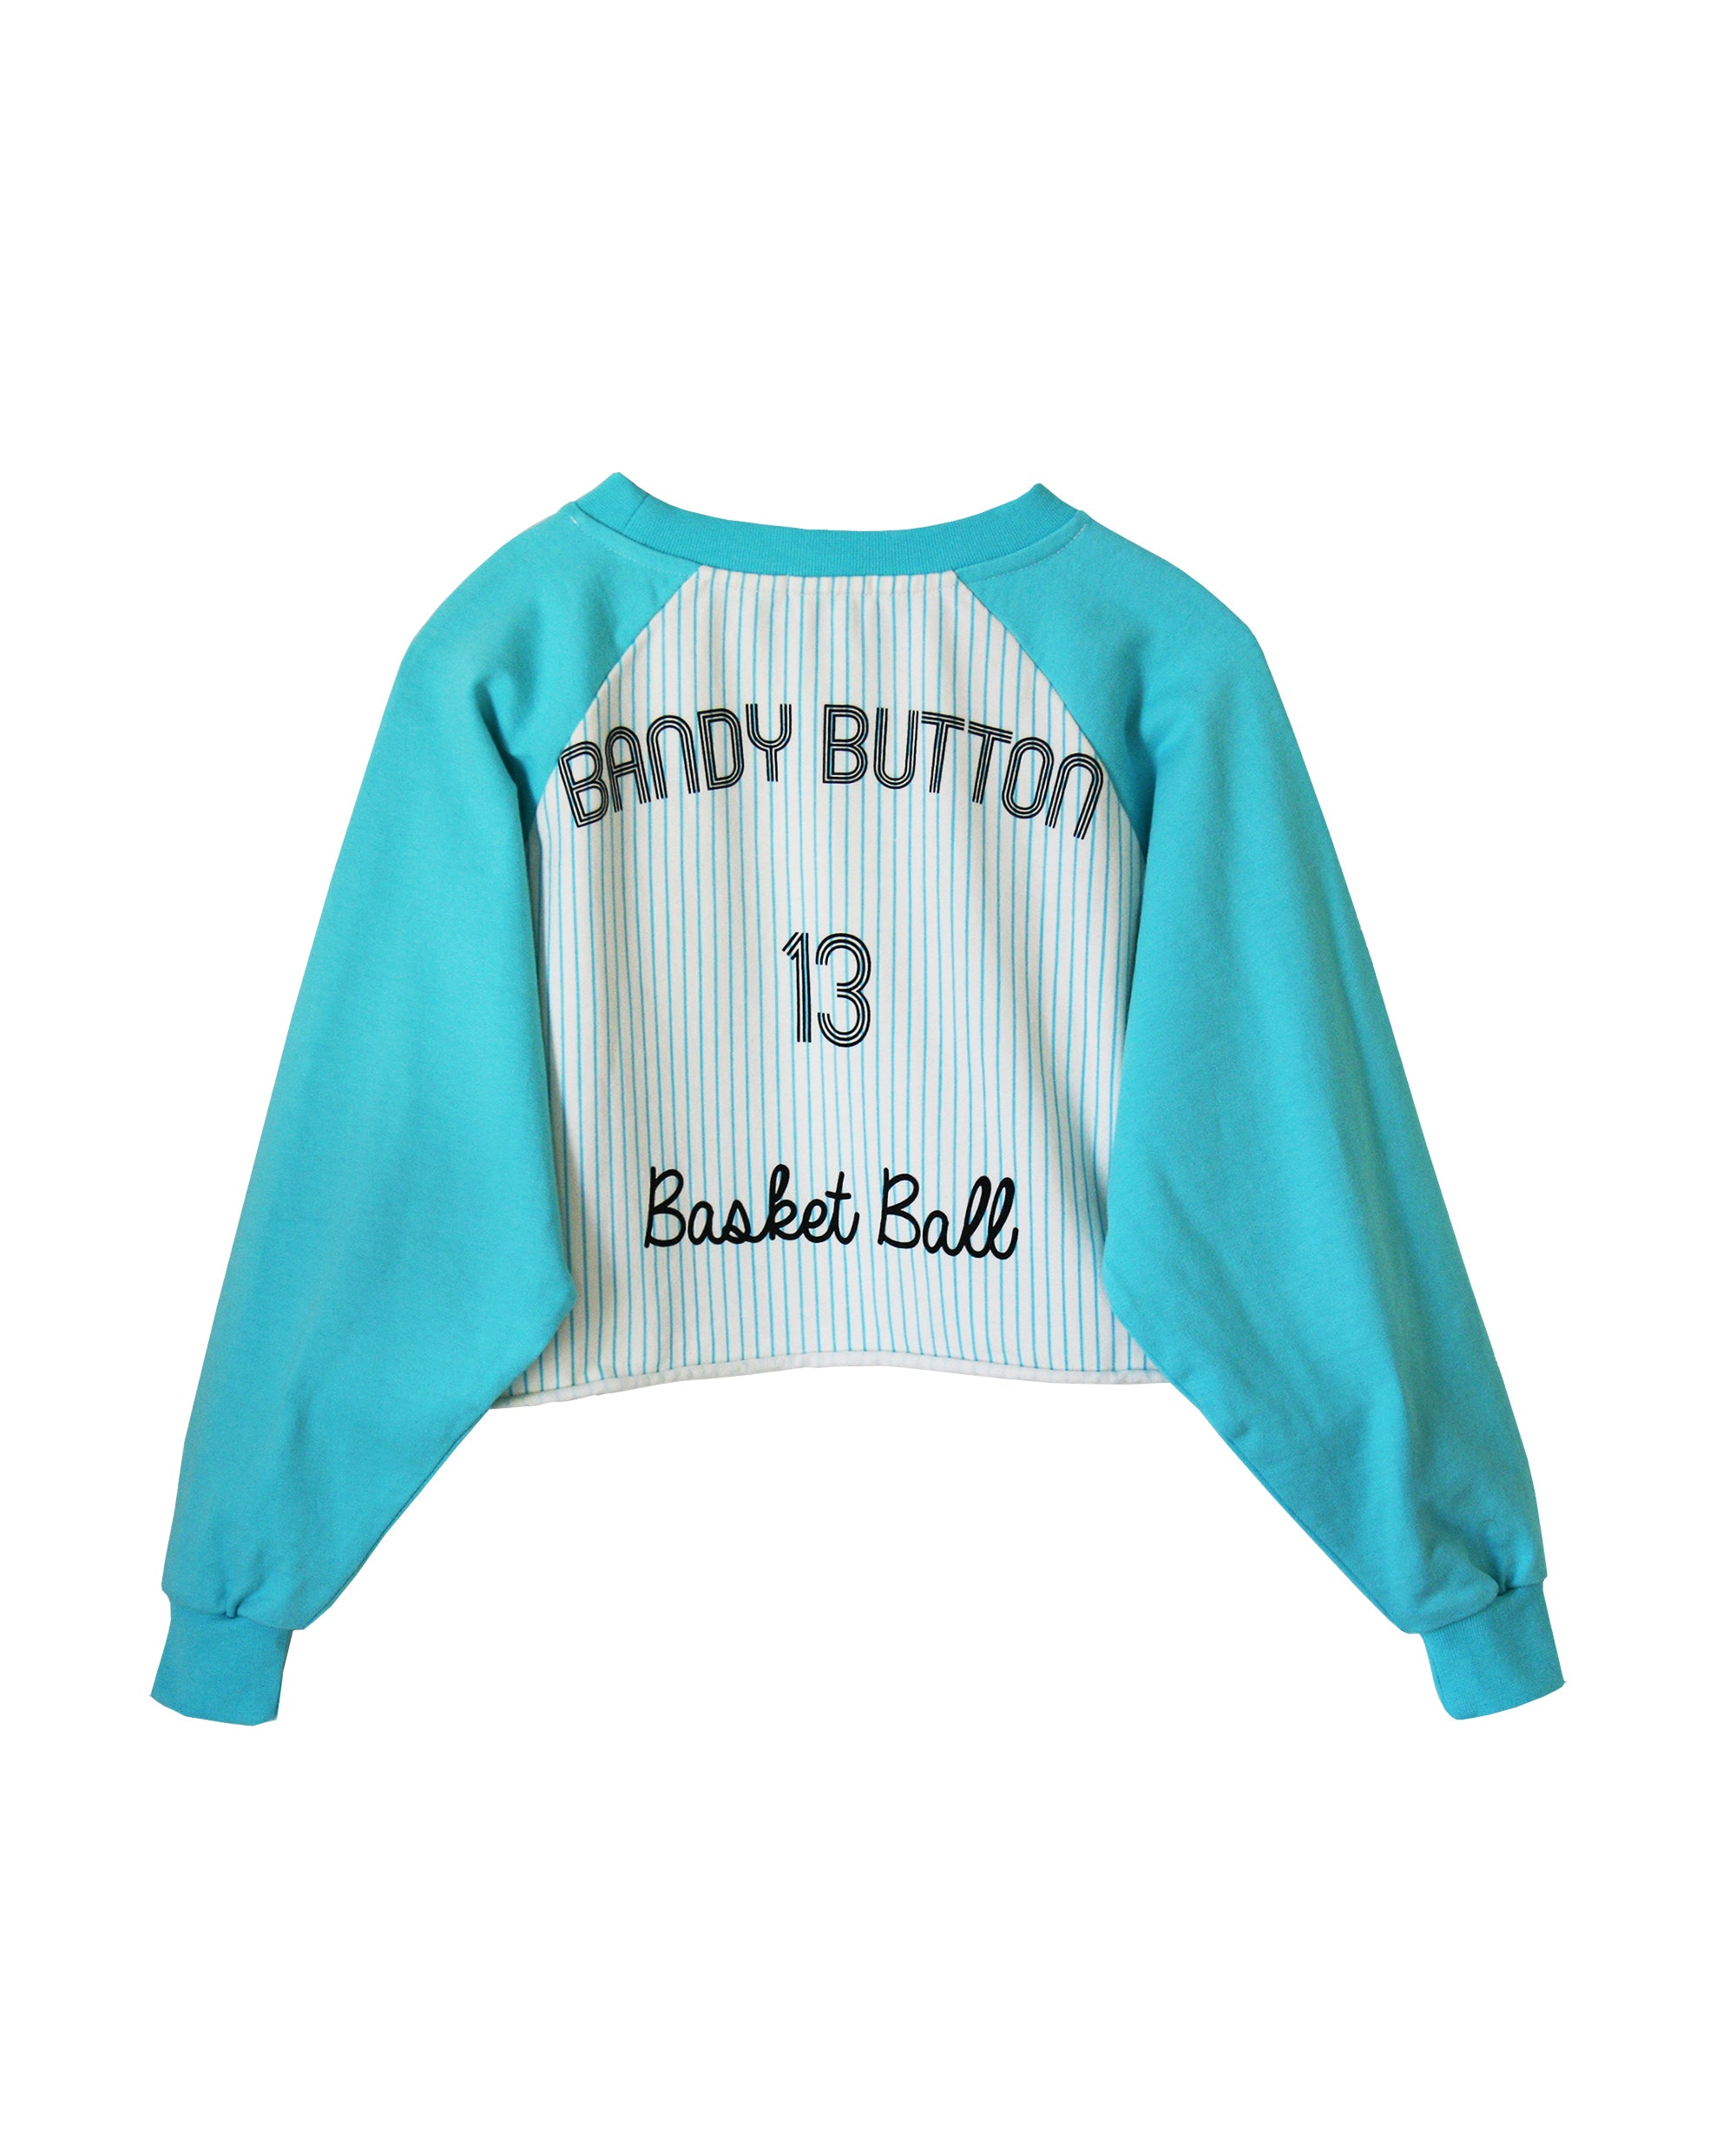 Bandy Button Culter Short Sweatshirt